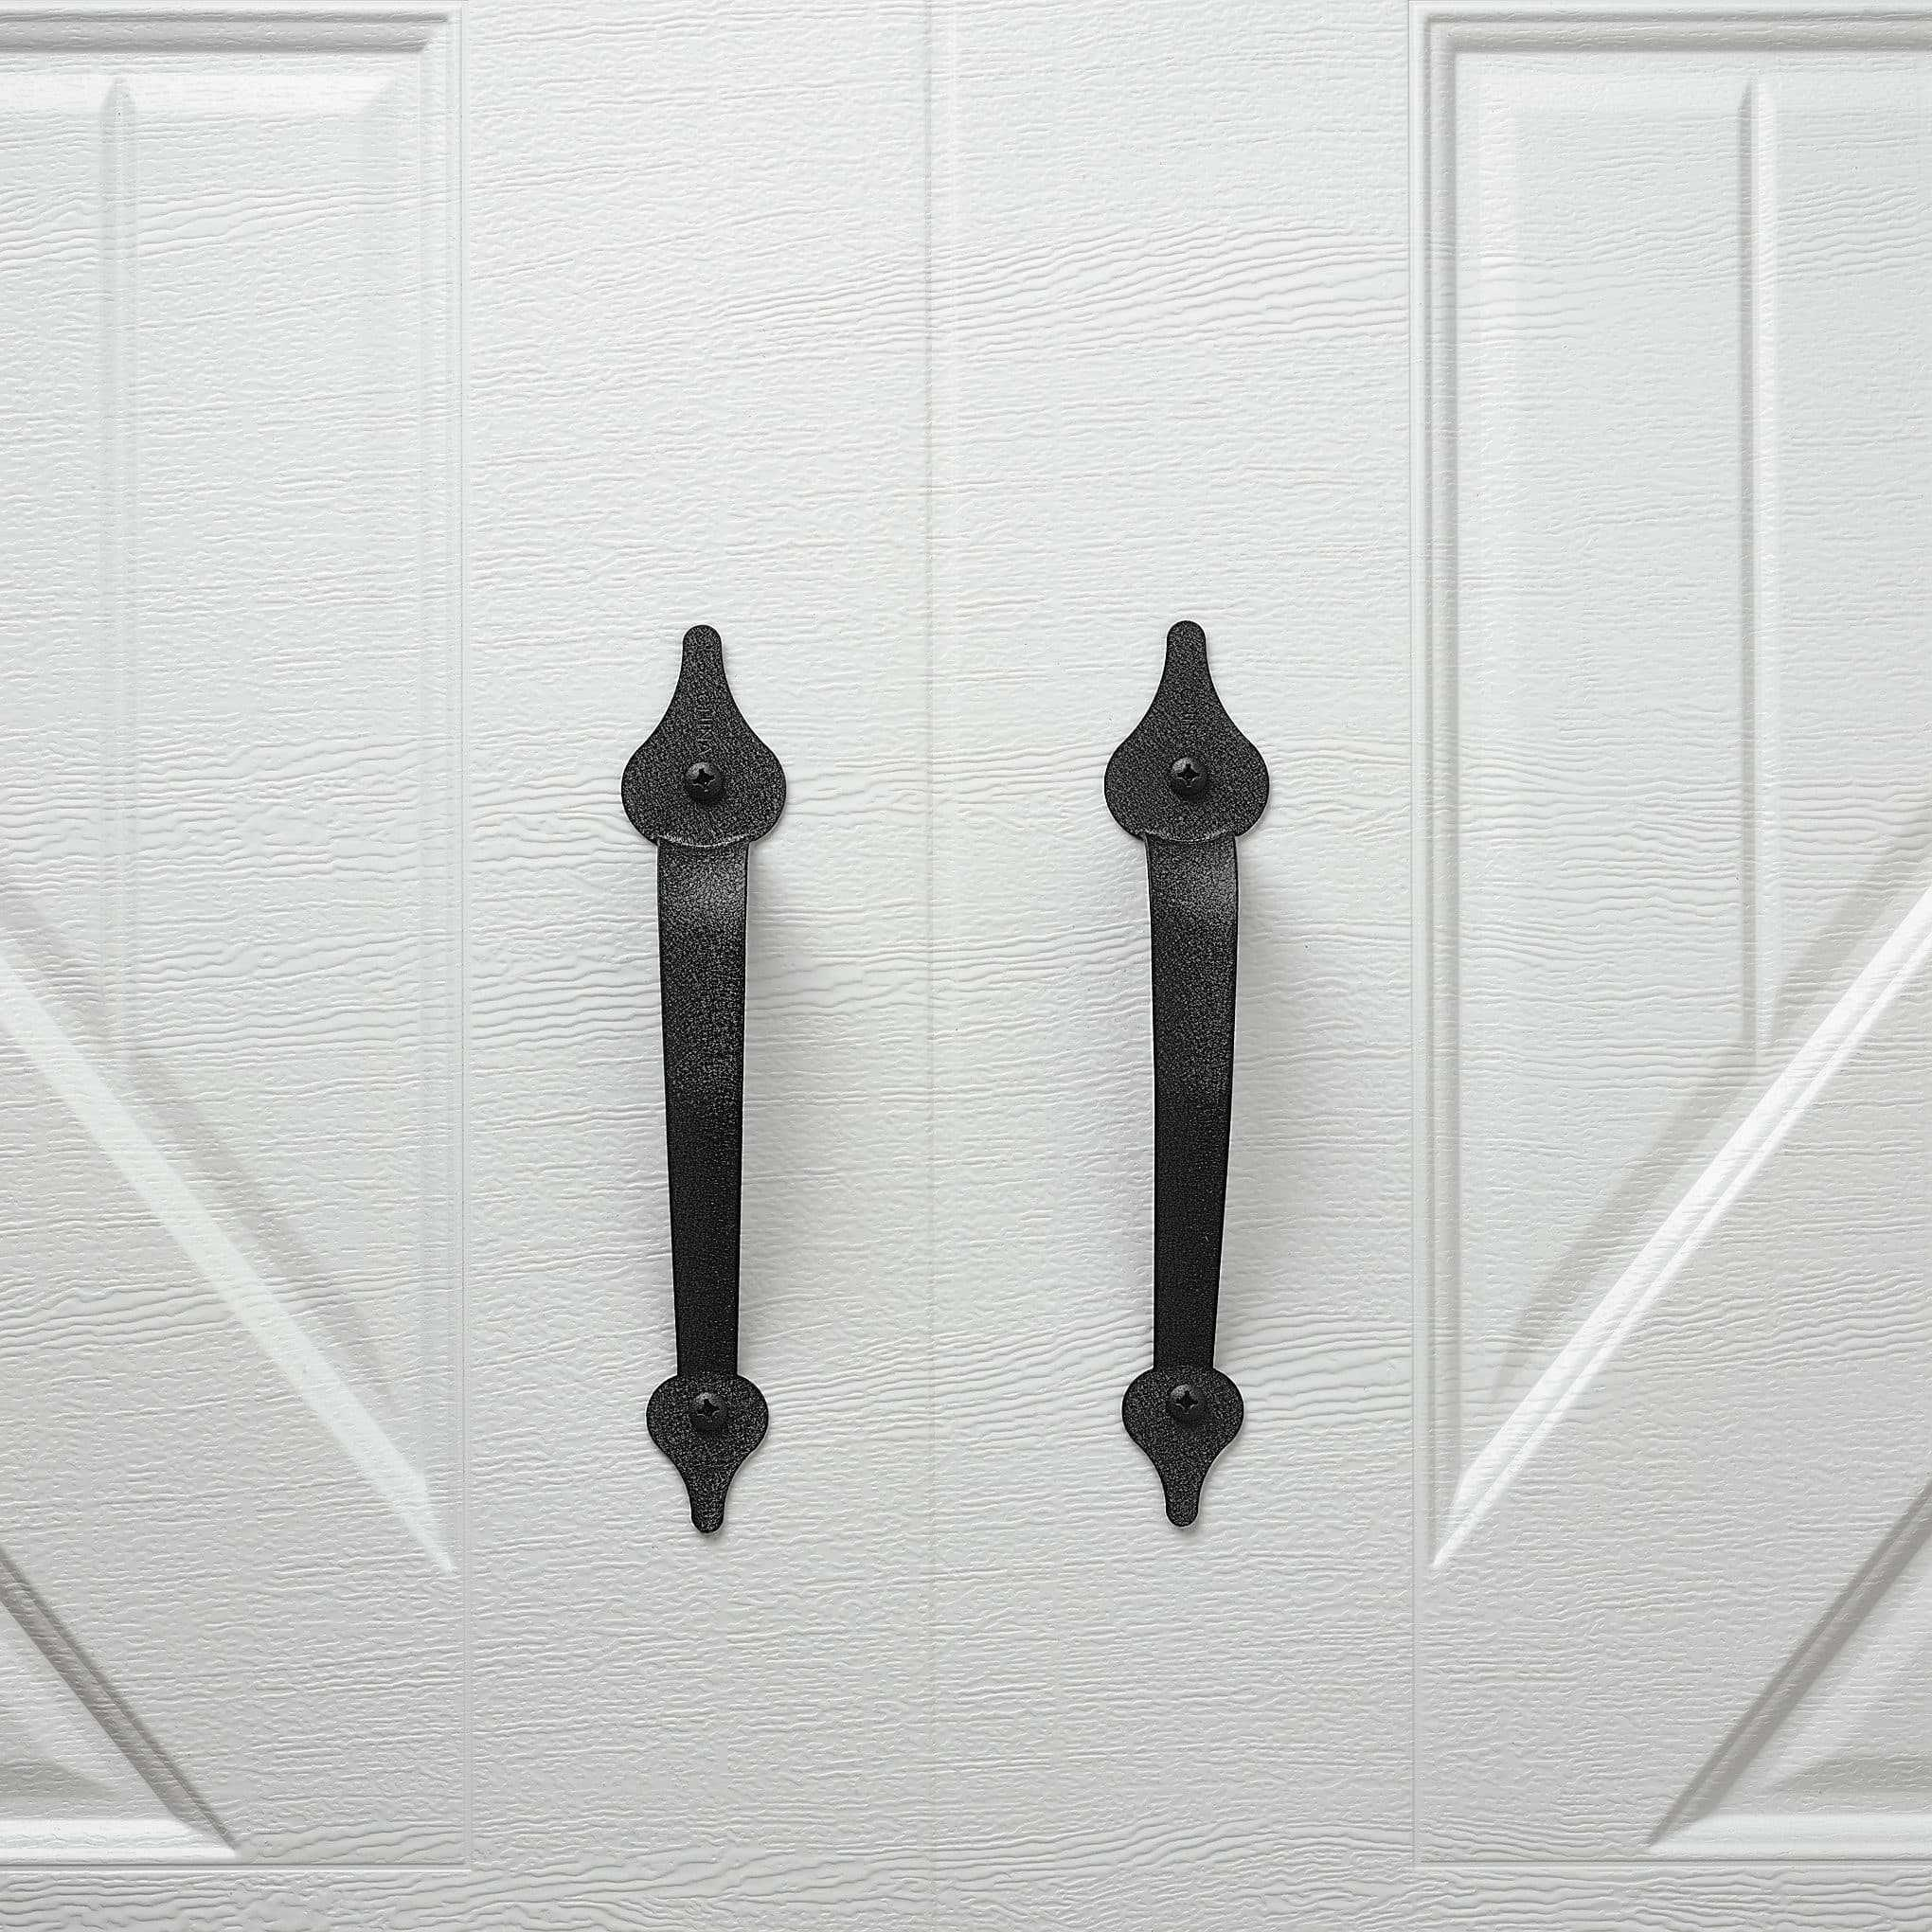 Decorative Stamped Steel Hardware Handles